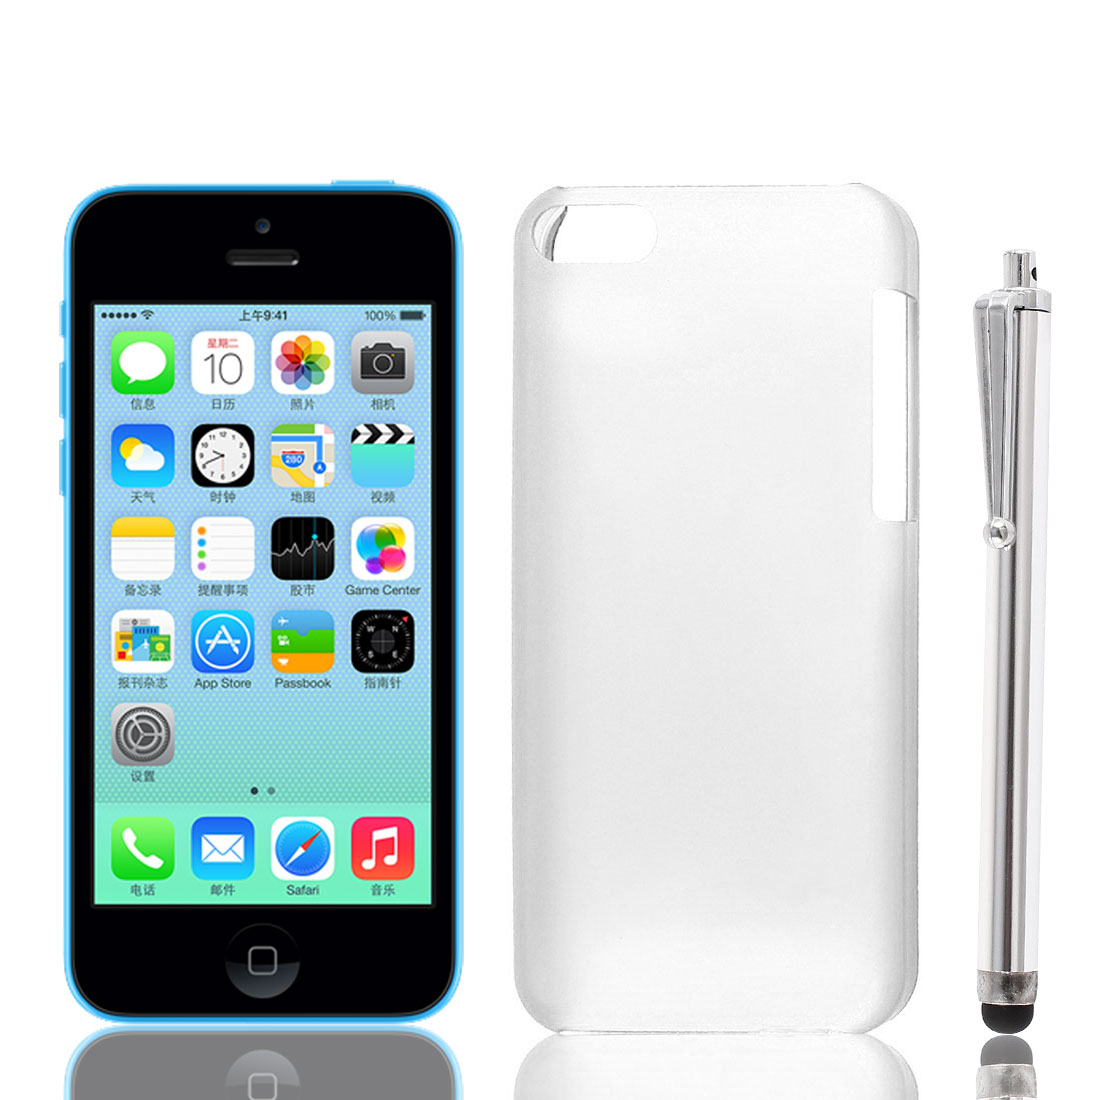 Clear Plastic 0.7mm Ultra-Thin Back Case Cover Slim + Stylus Pen for iPhone 5 5C